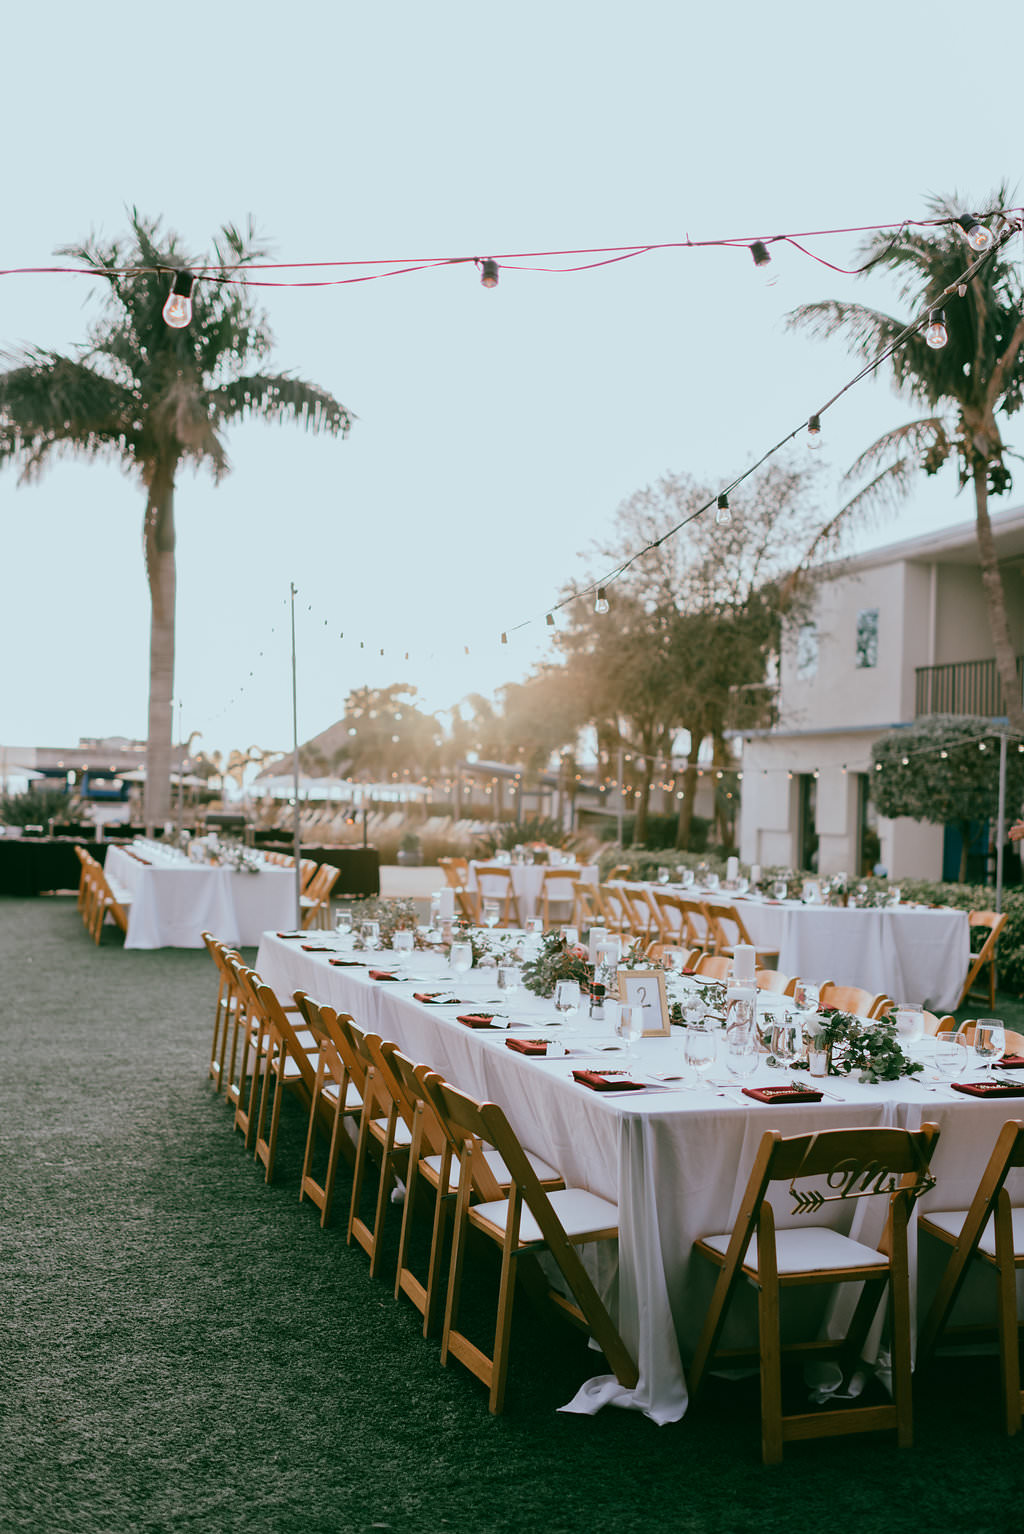 Outdoor Garden Lawn Wedding Reception Decor Long Feasting Table White Tablecloths Burgundy Linens Wooden Folding Chairs With White Cushions Low Floral Centerpieces St Petersburg Wedding Venue Postcard Inn On The Beach